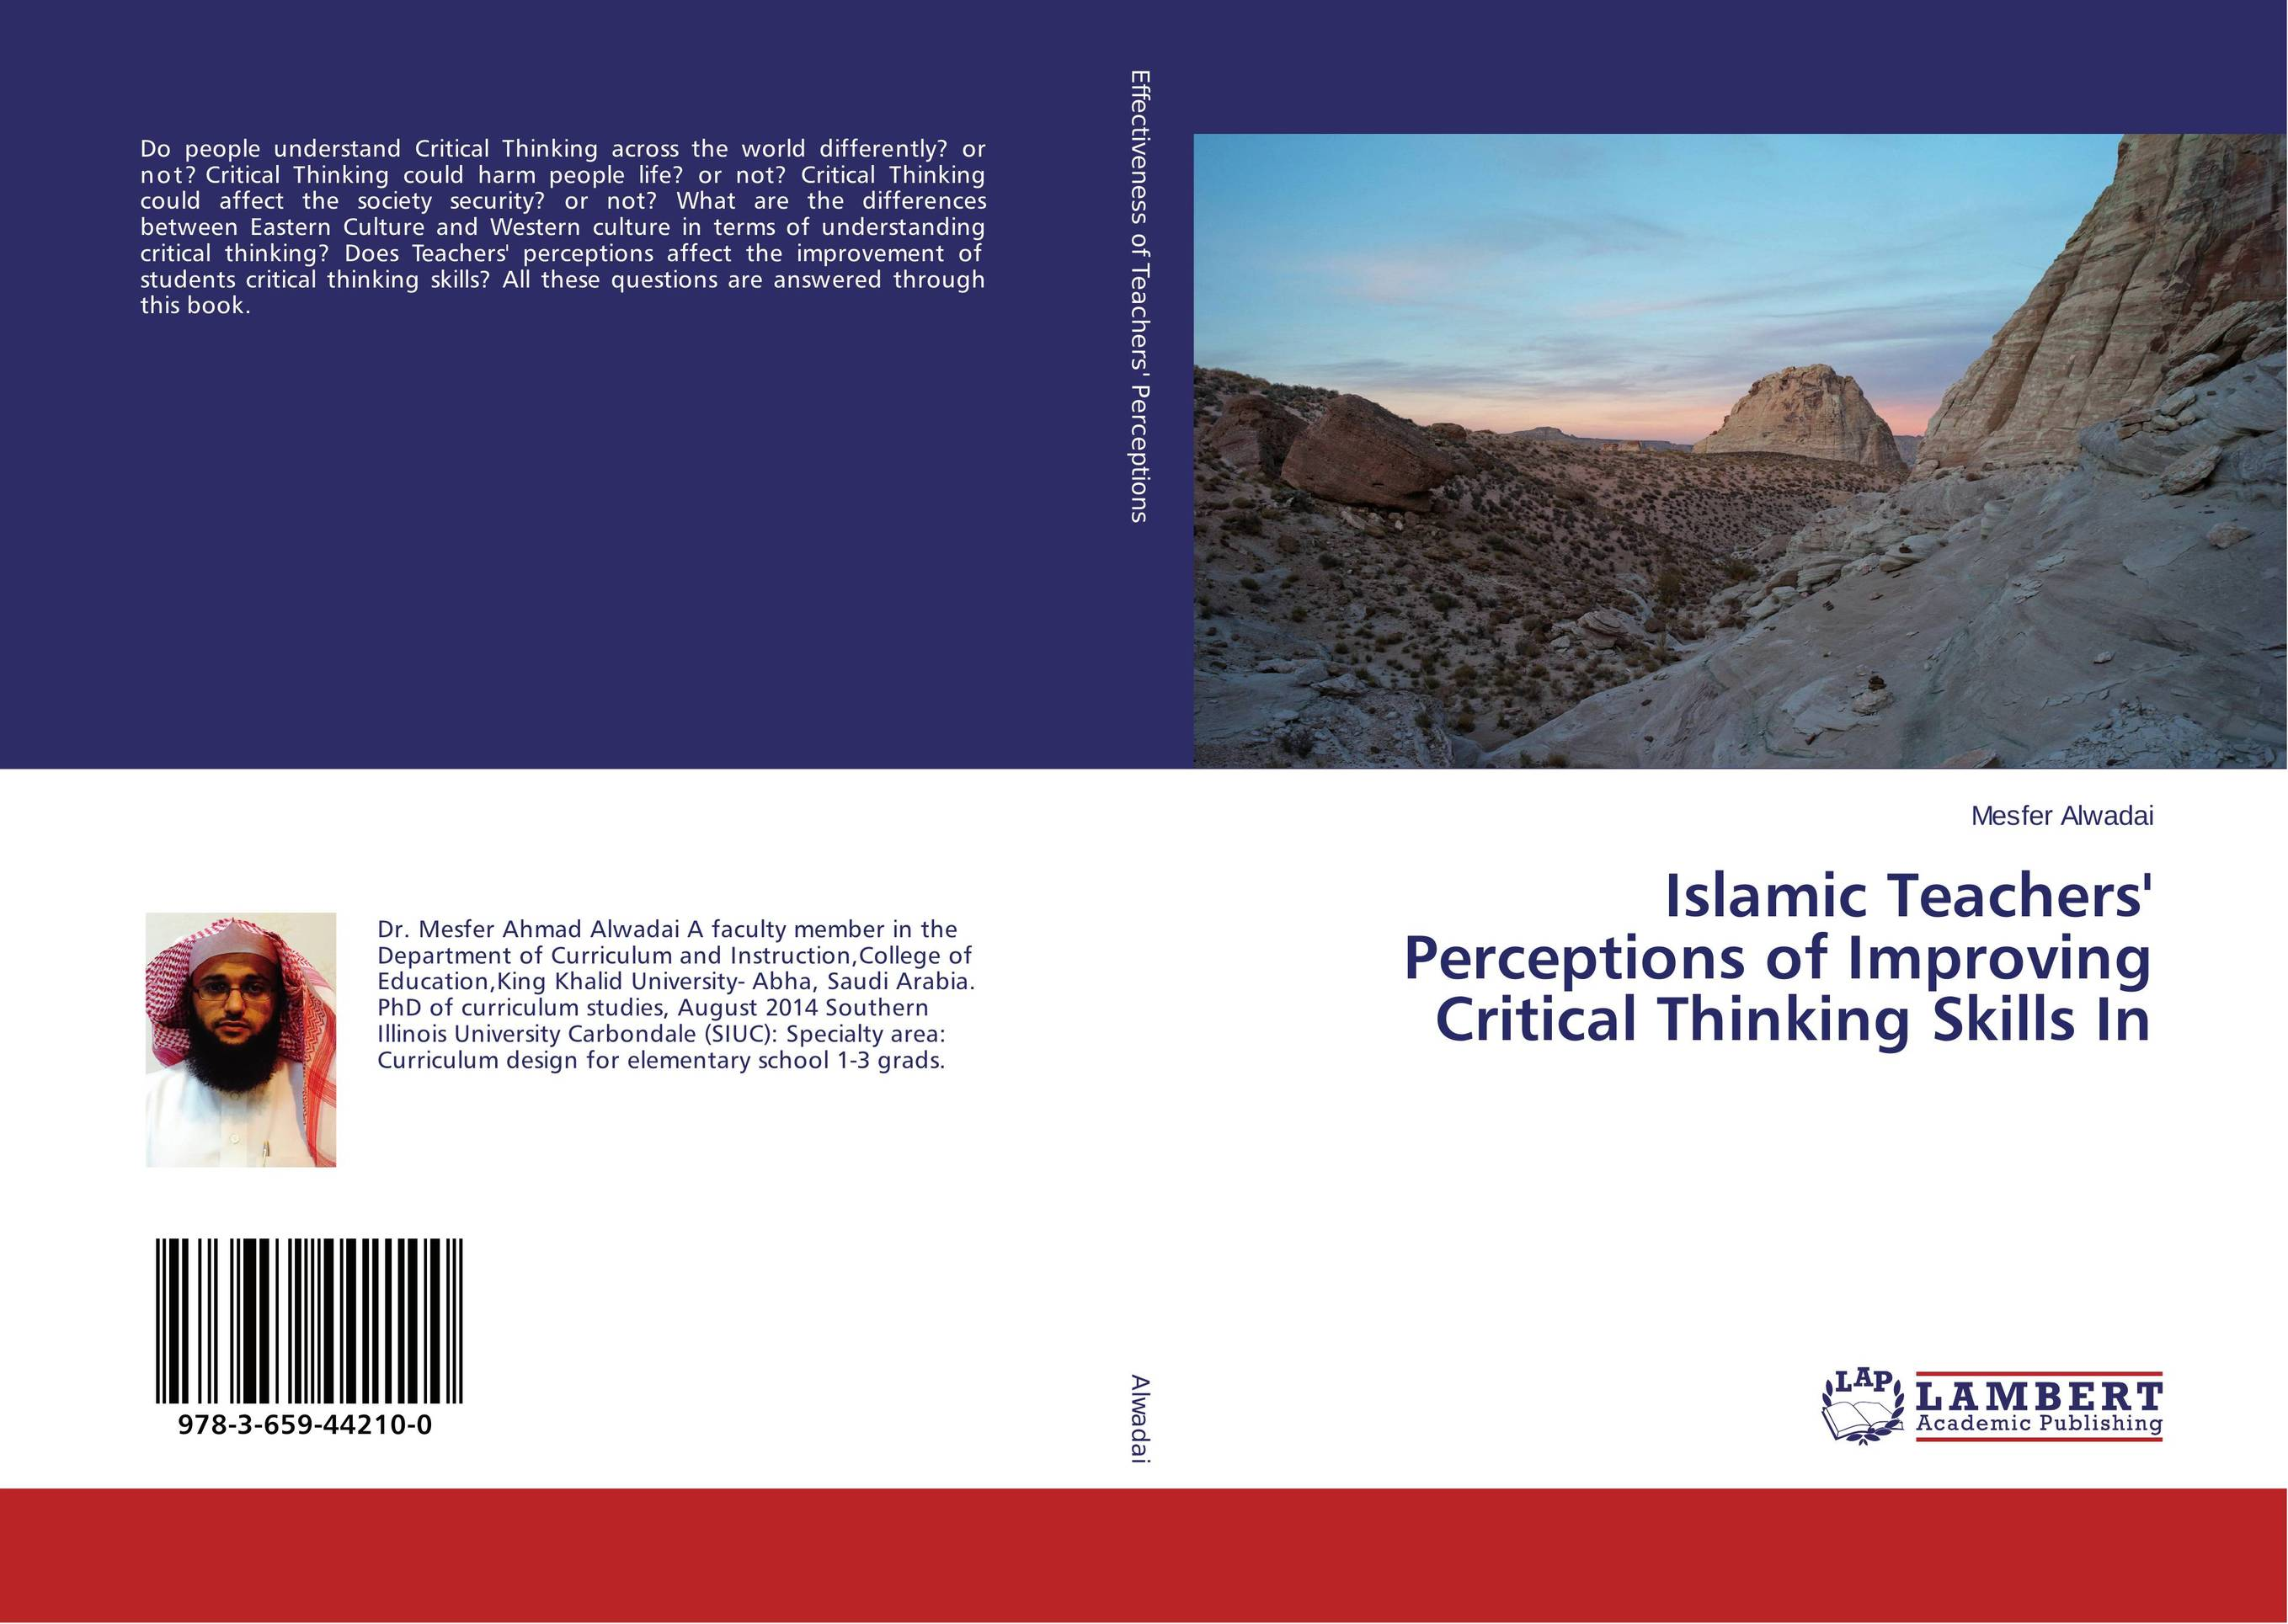 Islamic Teachers' Perceptions of Improving Critical Thinking Skills In